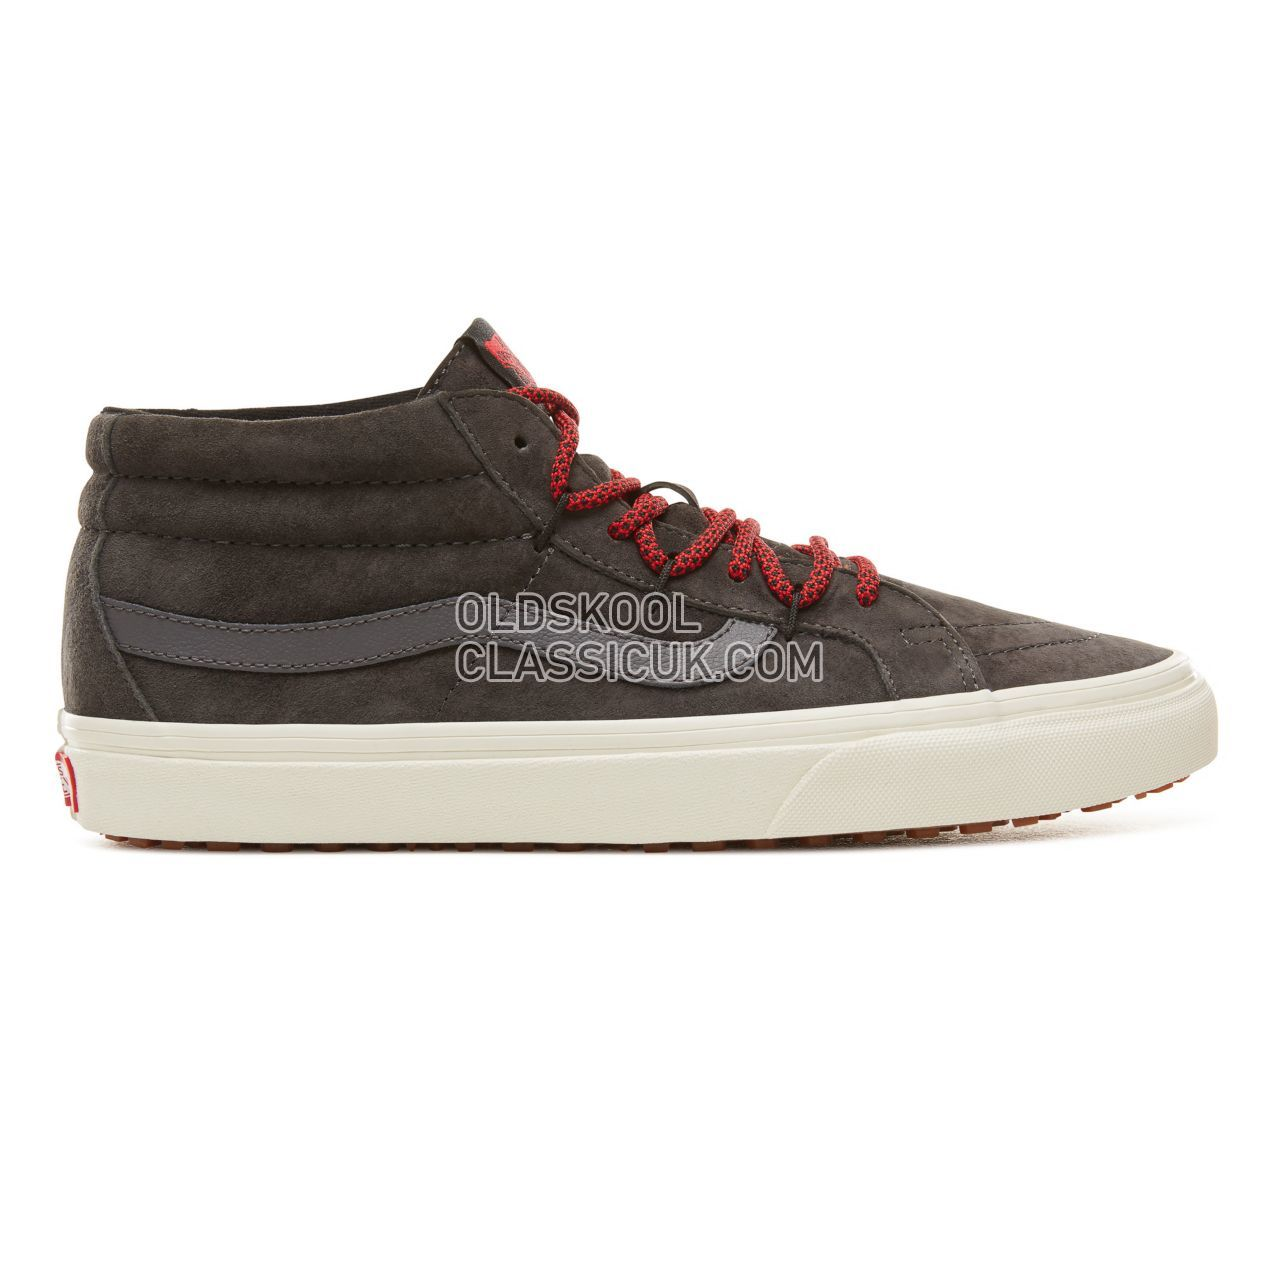 Vans Sk8-Mid Reissue Ghillie MTE Sneakers Mens (Mte) Forged Iron/Marshmallow VA3TKQUCR Shoes